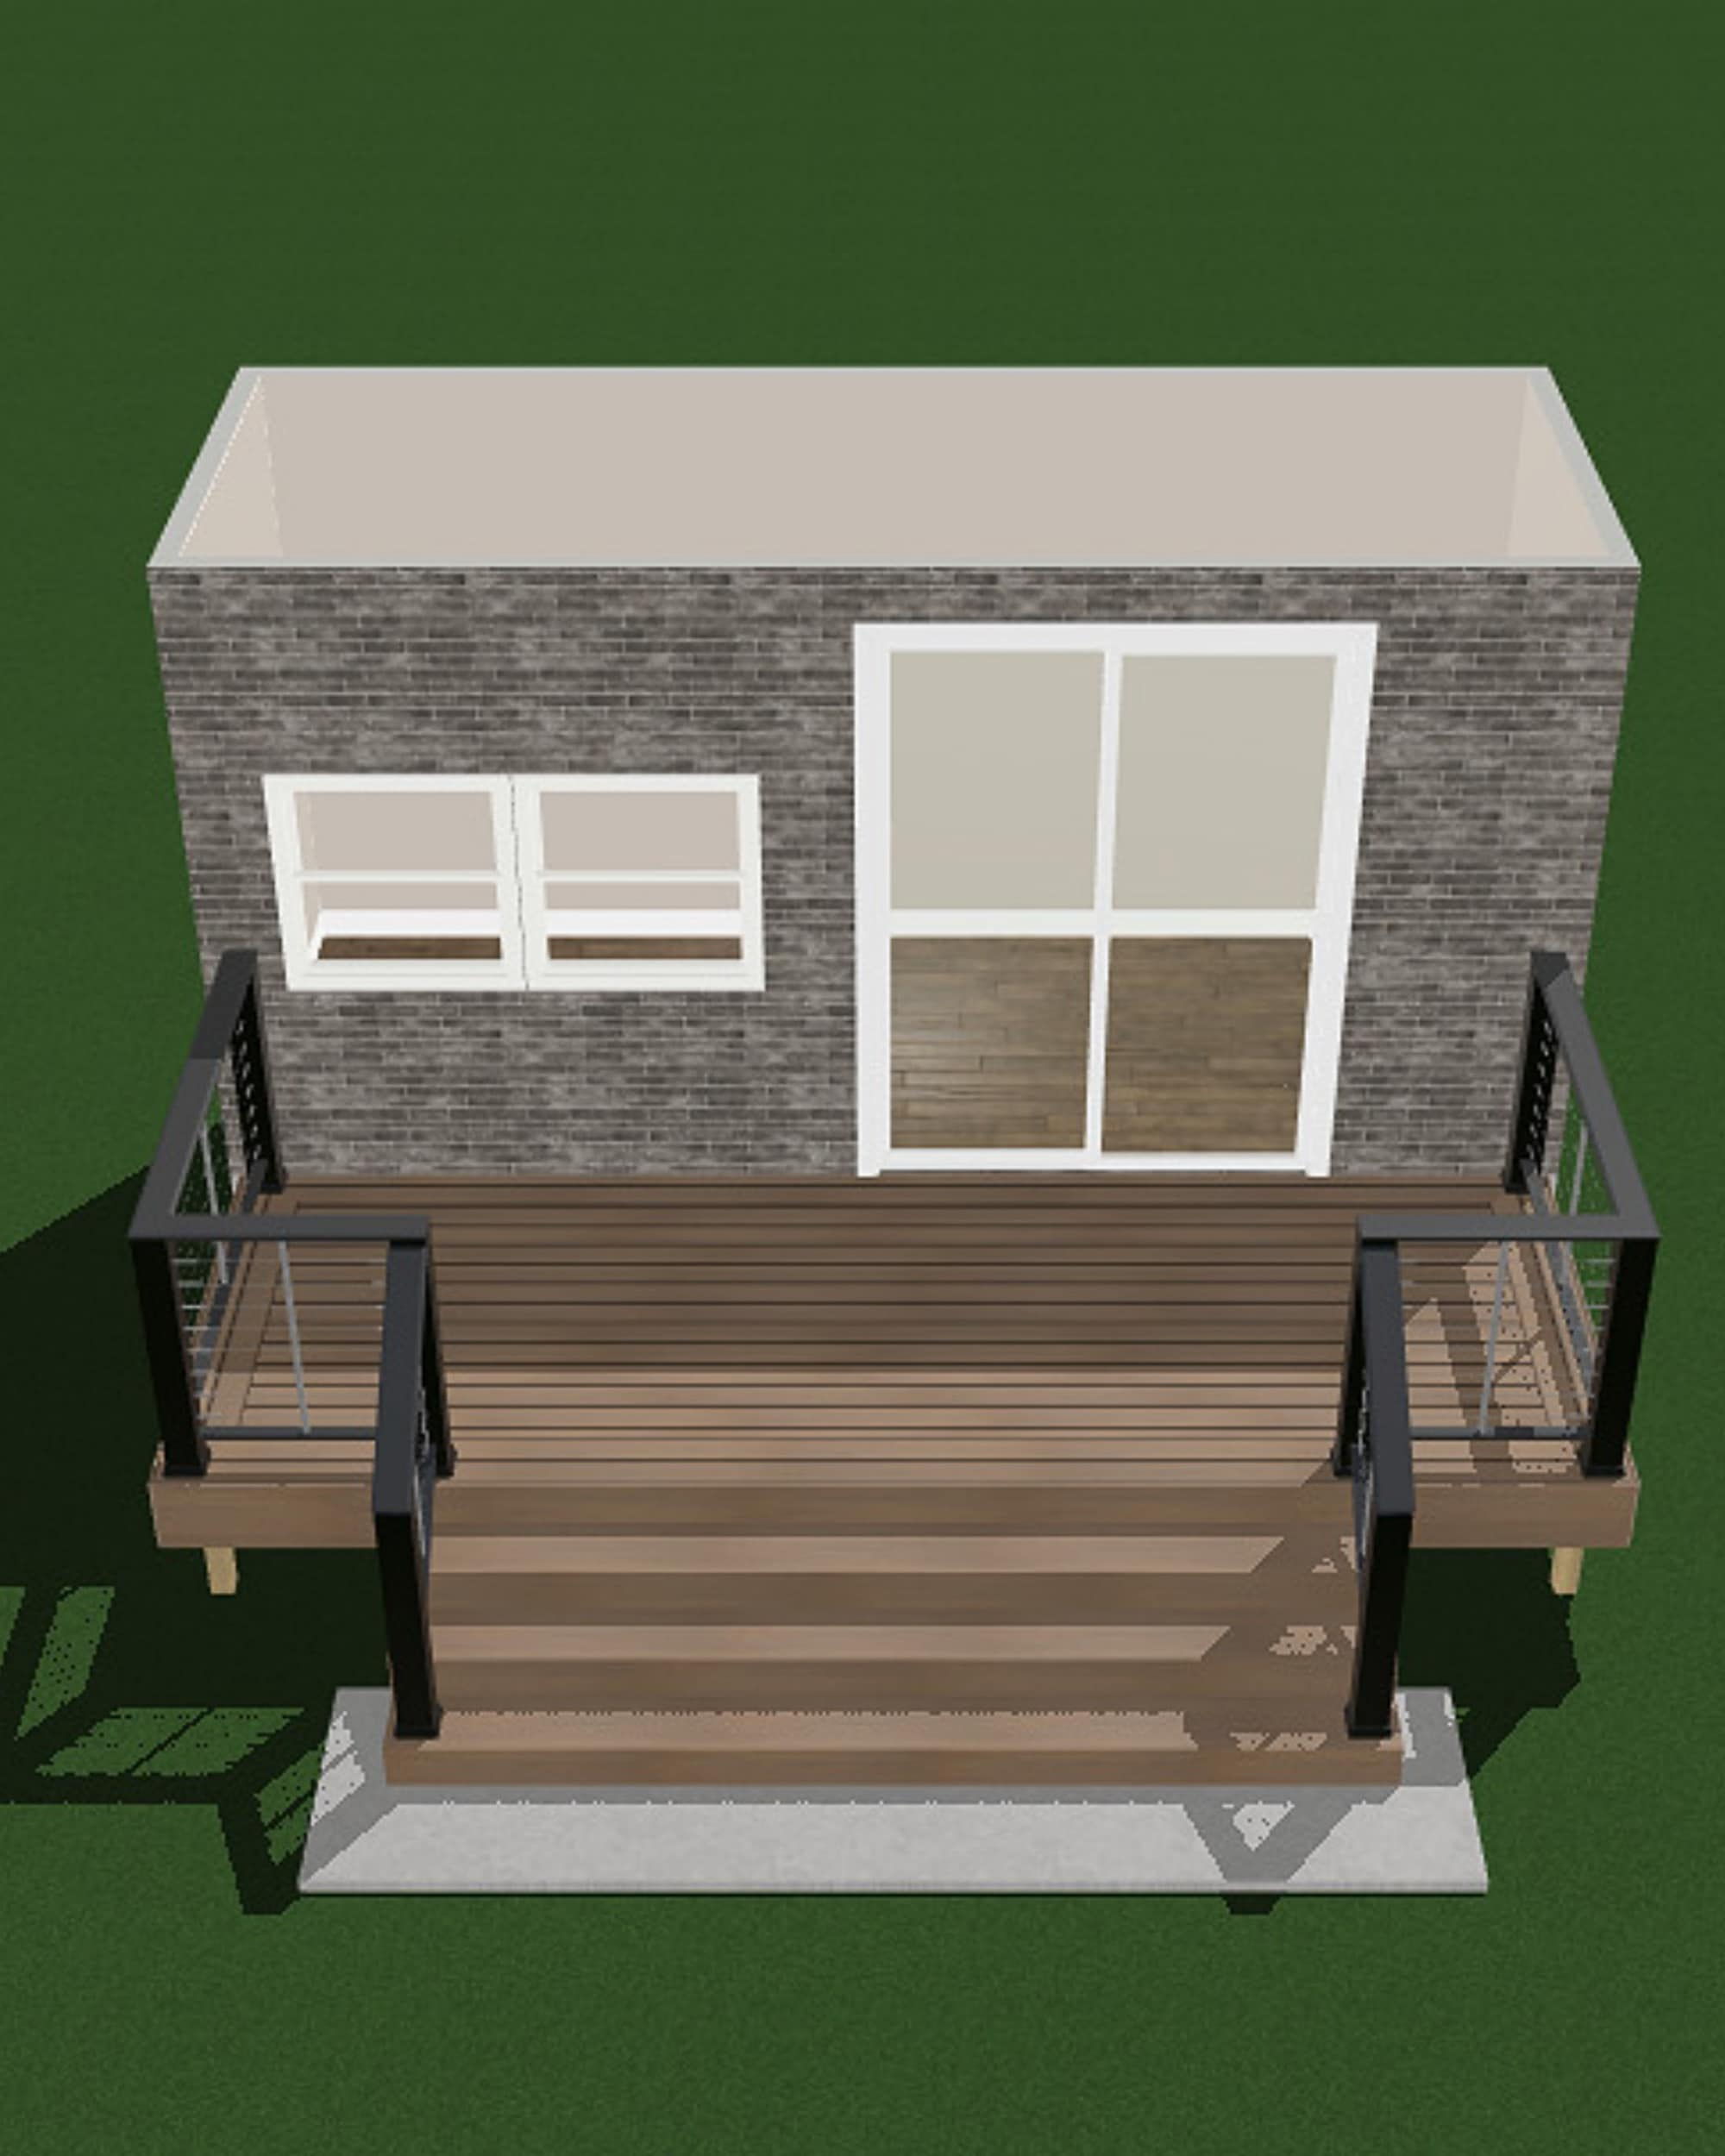 Our backyard renovation gameplan for a new deck